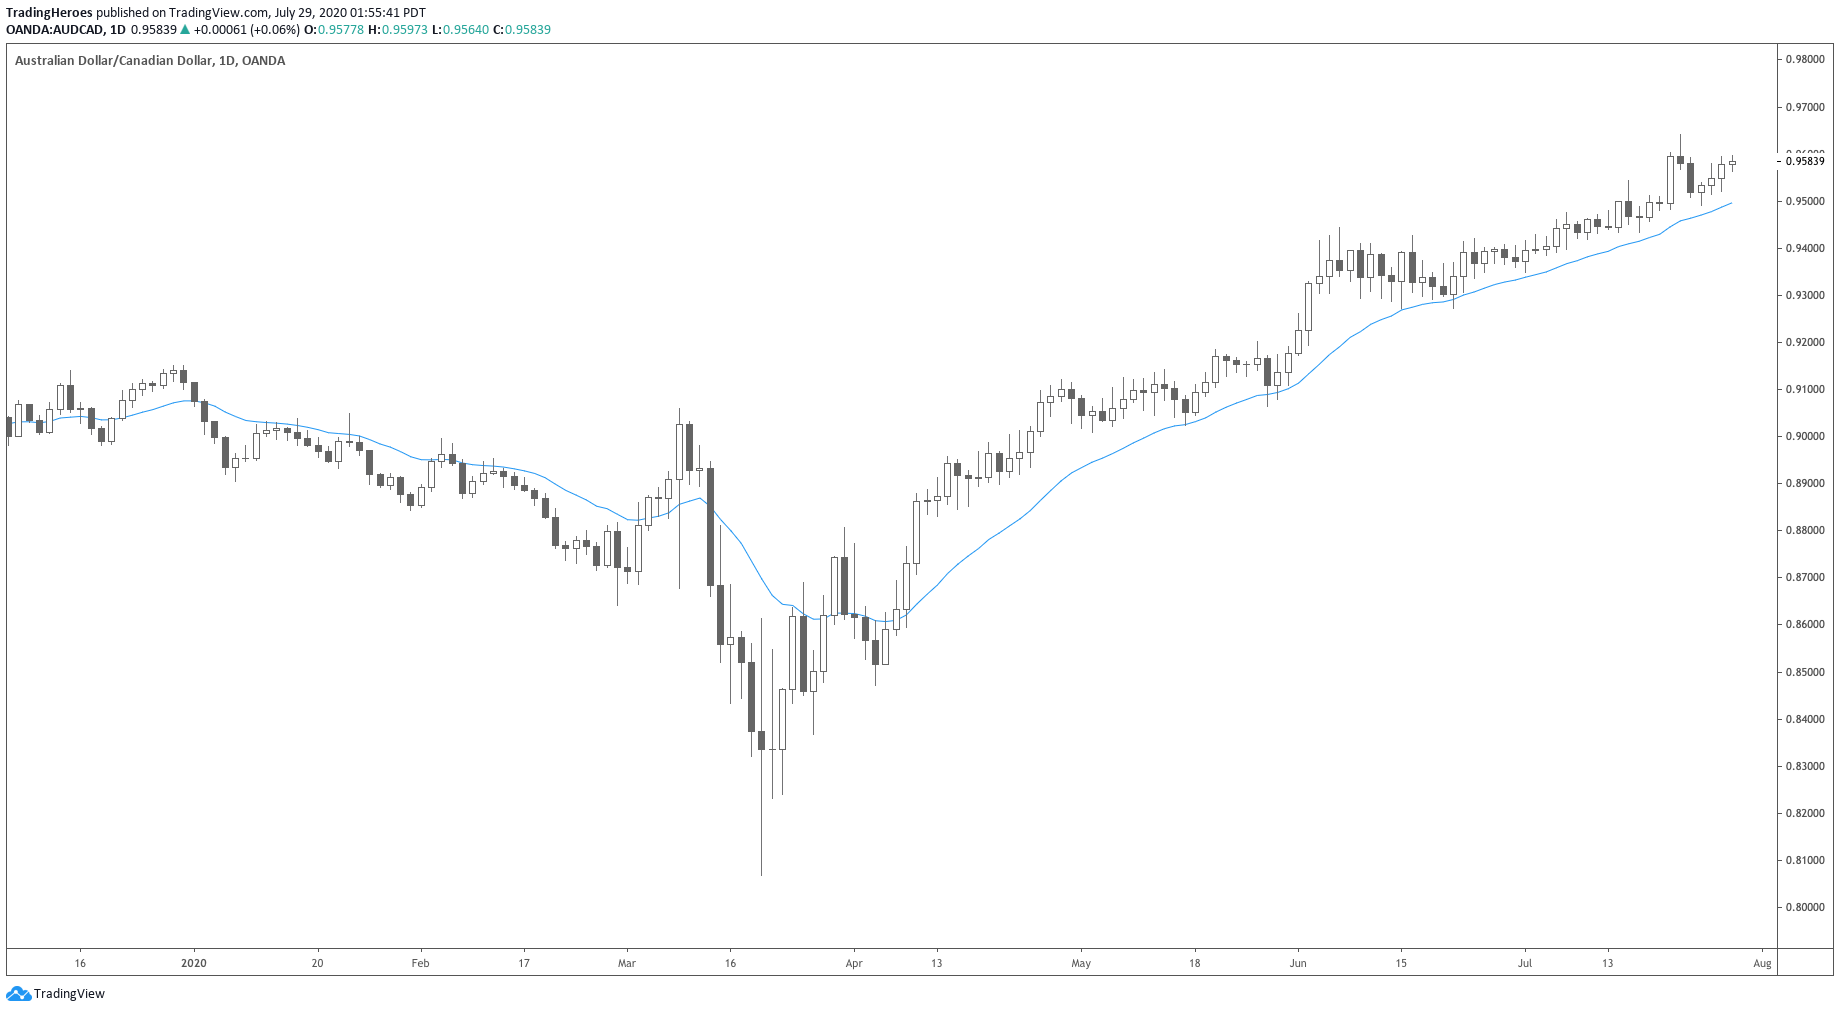 Moving Average trend following